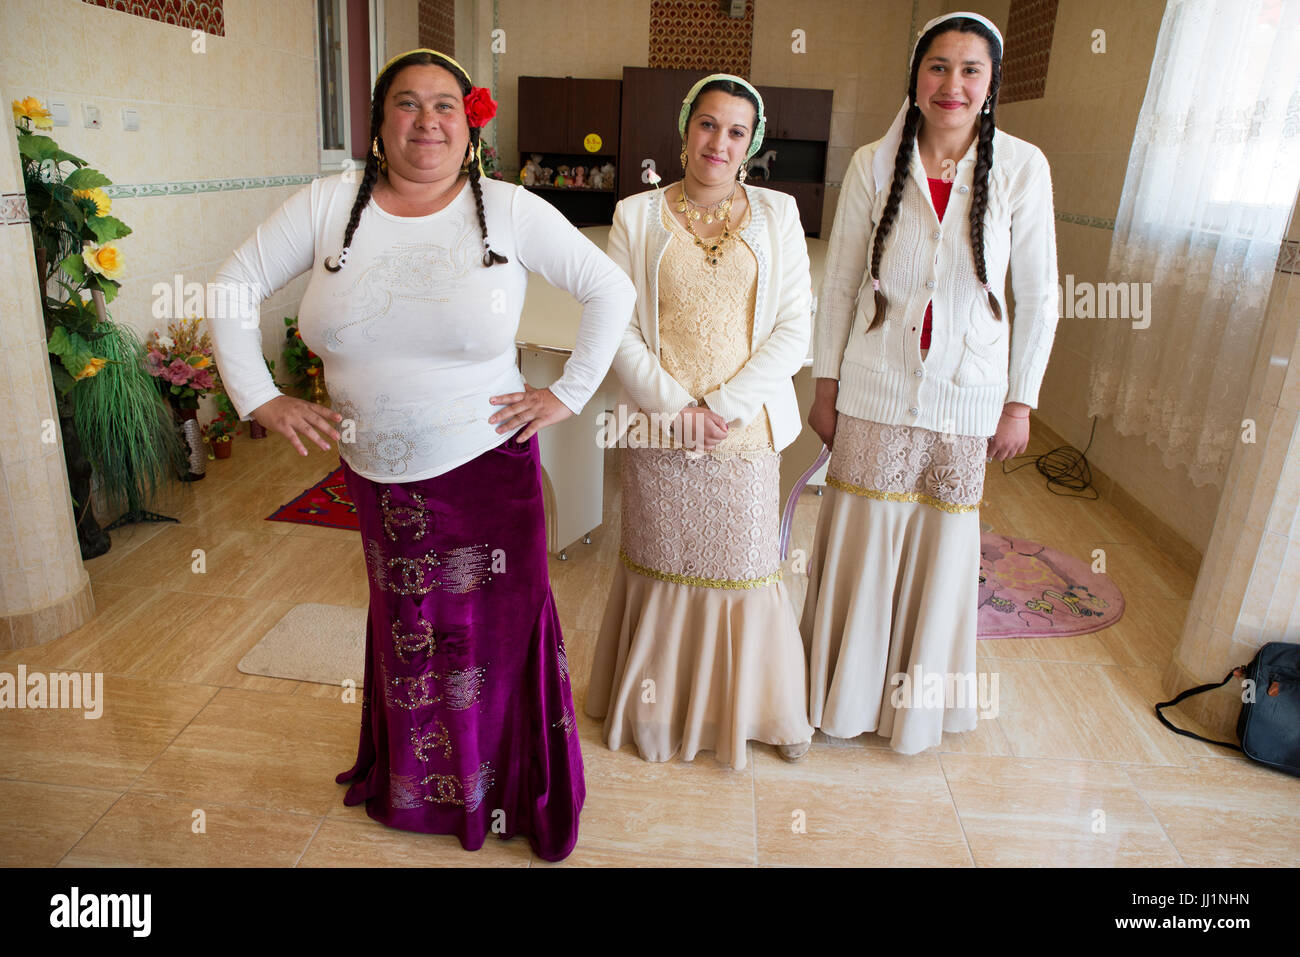 Three women of a wealthy Roma gypsy family posing inside their luxury house, Ivanesti, Romania - Stock Image